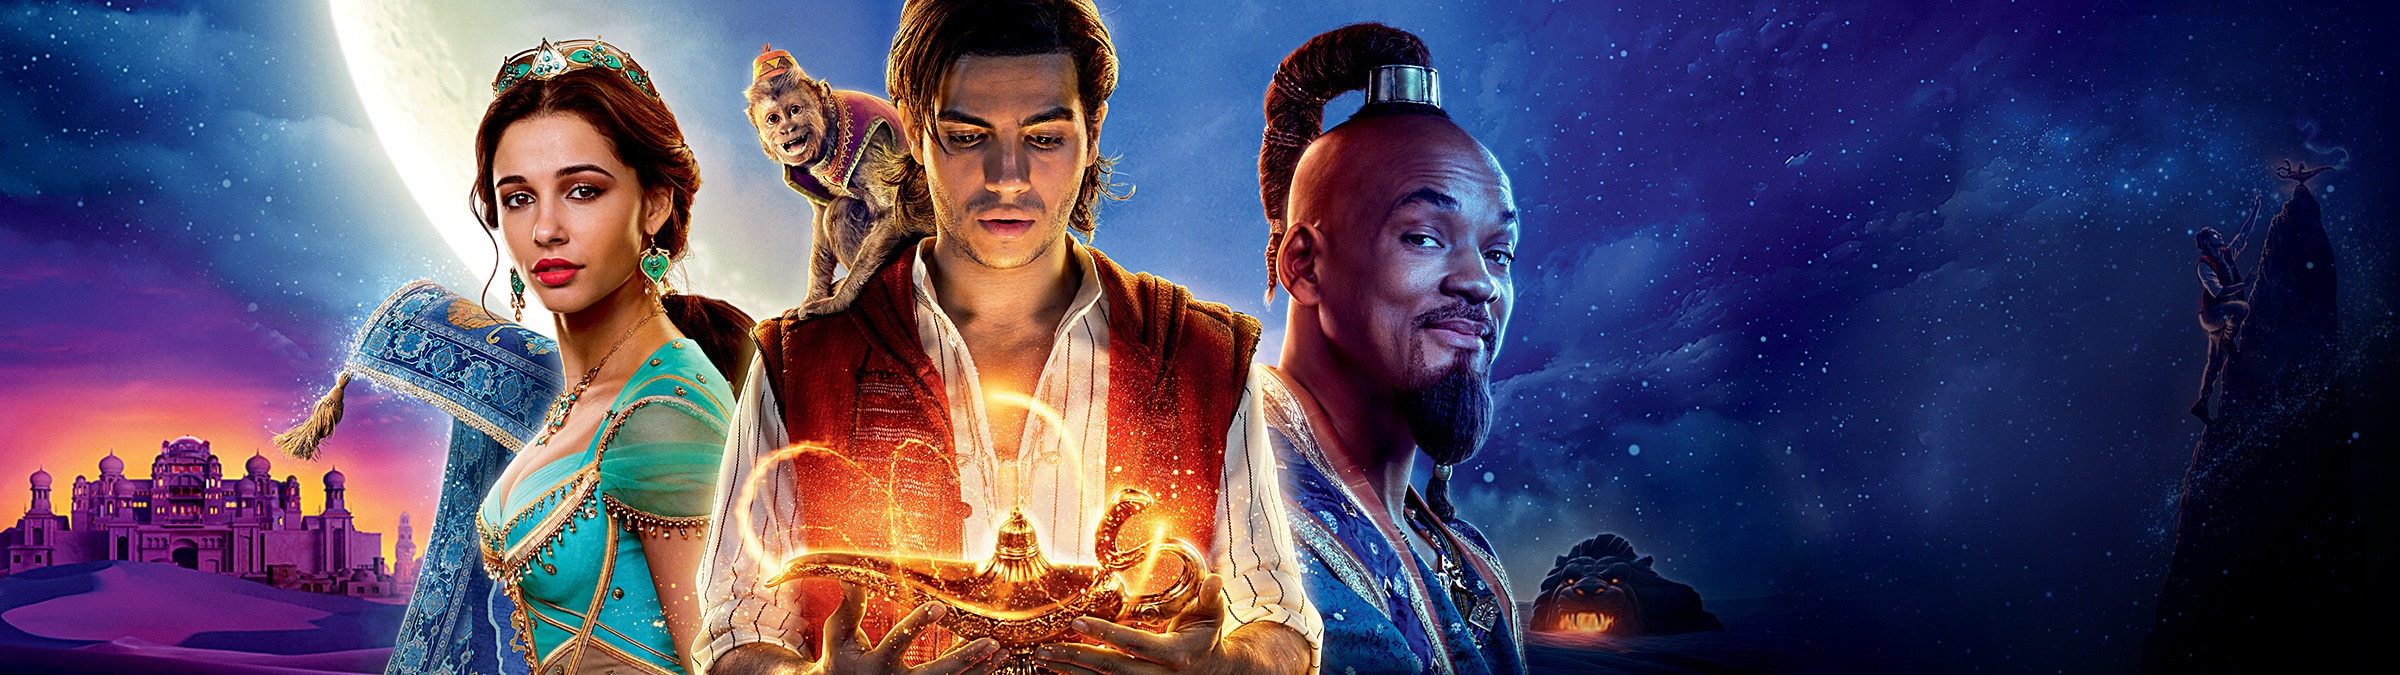 aladdin wallpaper 2019 hd